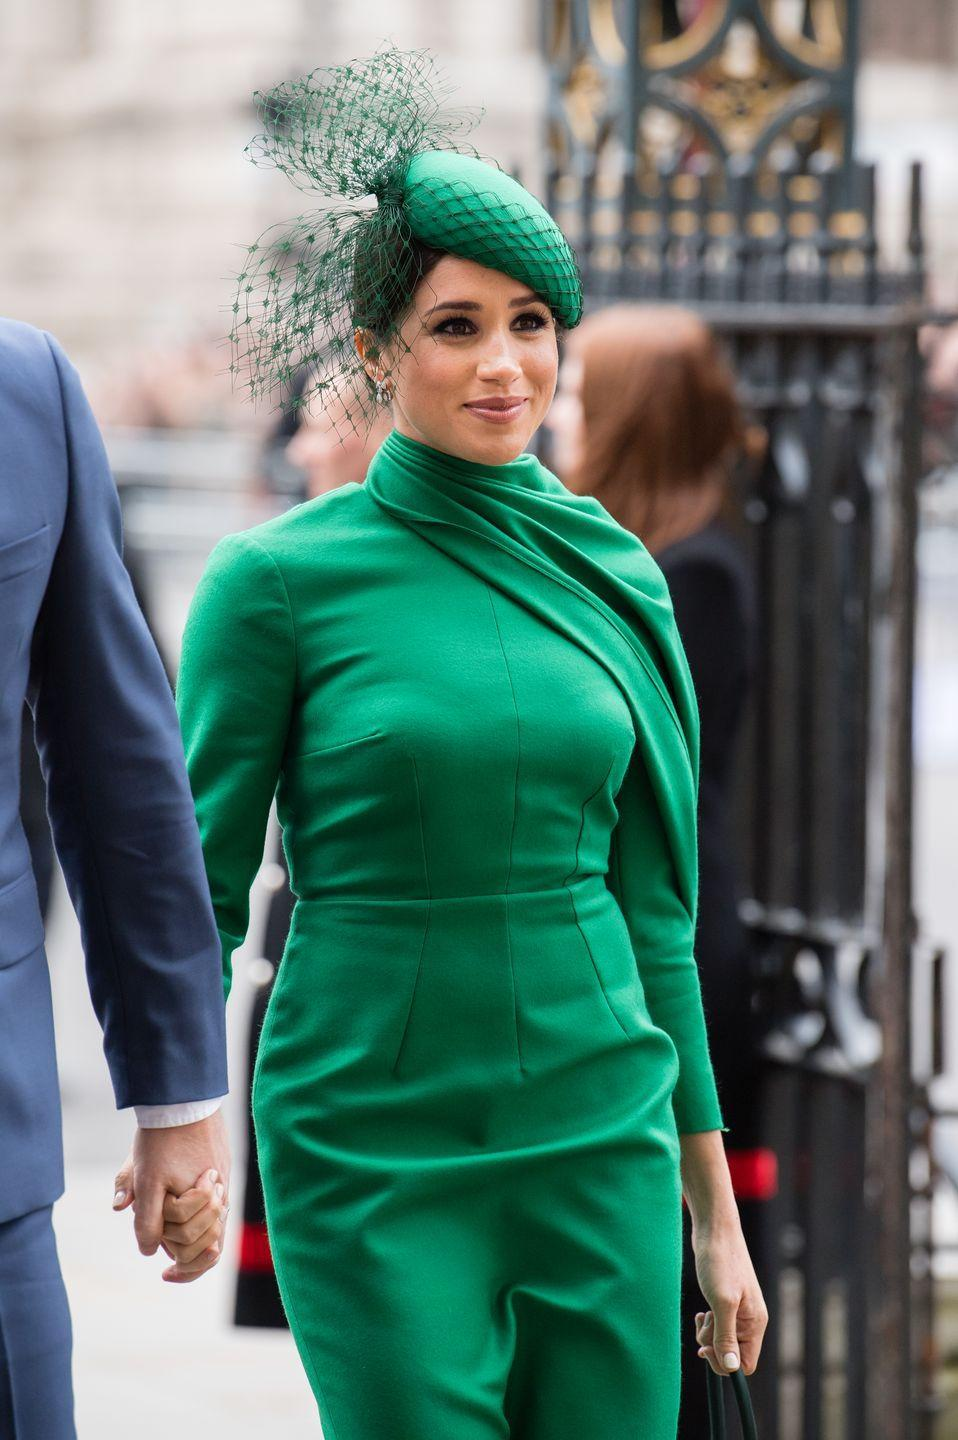 "<p><strong>Claim to fame: </strong>Duchess of Sussex, former actress</p><p><strong>Why she's extraordinary:</strong> Though Markle—along with her husband, Prince Harry—<a href=""https://www.oprahmag.com/entertainment/a30445818/meghan-markle-prince-harry-backlash-step-back-royal-family/"" rel=""nofollow noopener"" target=""_blank"" data-ylk=""slk:made the unprecedented move to step back as a senior member"" class=""link rapid-noclick-resp"">made the unprecedented move to step back as a senior member</a> of the royal family in 2019, since she joined the world of the monarchy in 2016, the former actress has established herself as an advocate for a variety of causes including gender equality and climate change. She and her husband have also <a href=""https://www.oprahmag.com/entertainment/a35031925/meghan-markle-prince-harry-archewell-foundation-world-central-kitchen/"" rel=""nofollow noopener"" target=""_blank"" data-ylk=""slk:founded Archwell,"" class=""link rapid-noclick-resp"">founded Archwell,</a> an organization that acts as a production and <a href=""https://www.oprahmag.com/entertainment/a34976858/prince-harry-meghan-markle-podcast-archewell-preview/"" rel=""nofollow noopener"" target=""_blank"" data-ylk=""slk:audio company,"" class=""link rapid-noclick-resp"">audio company,</a> and a charitable foundation.</p>"